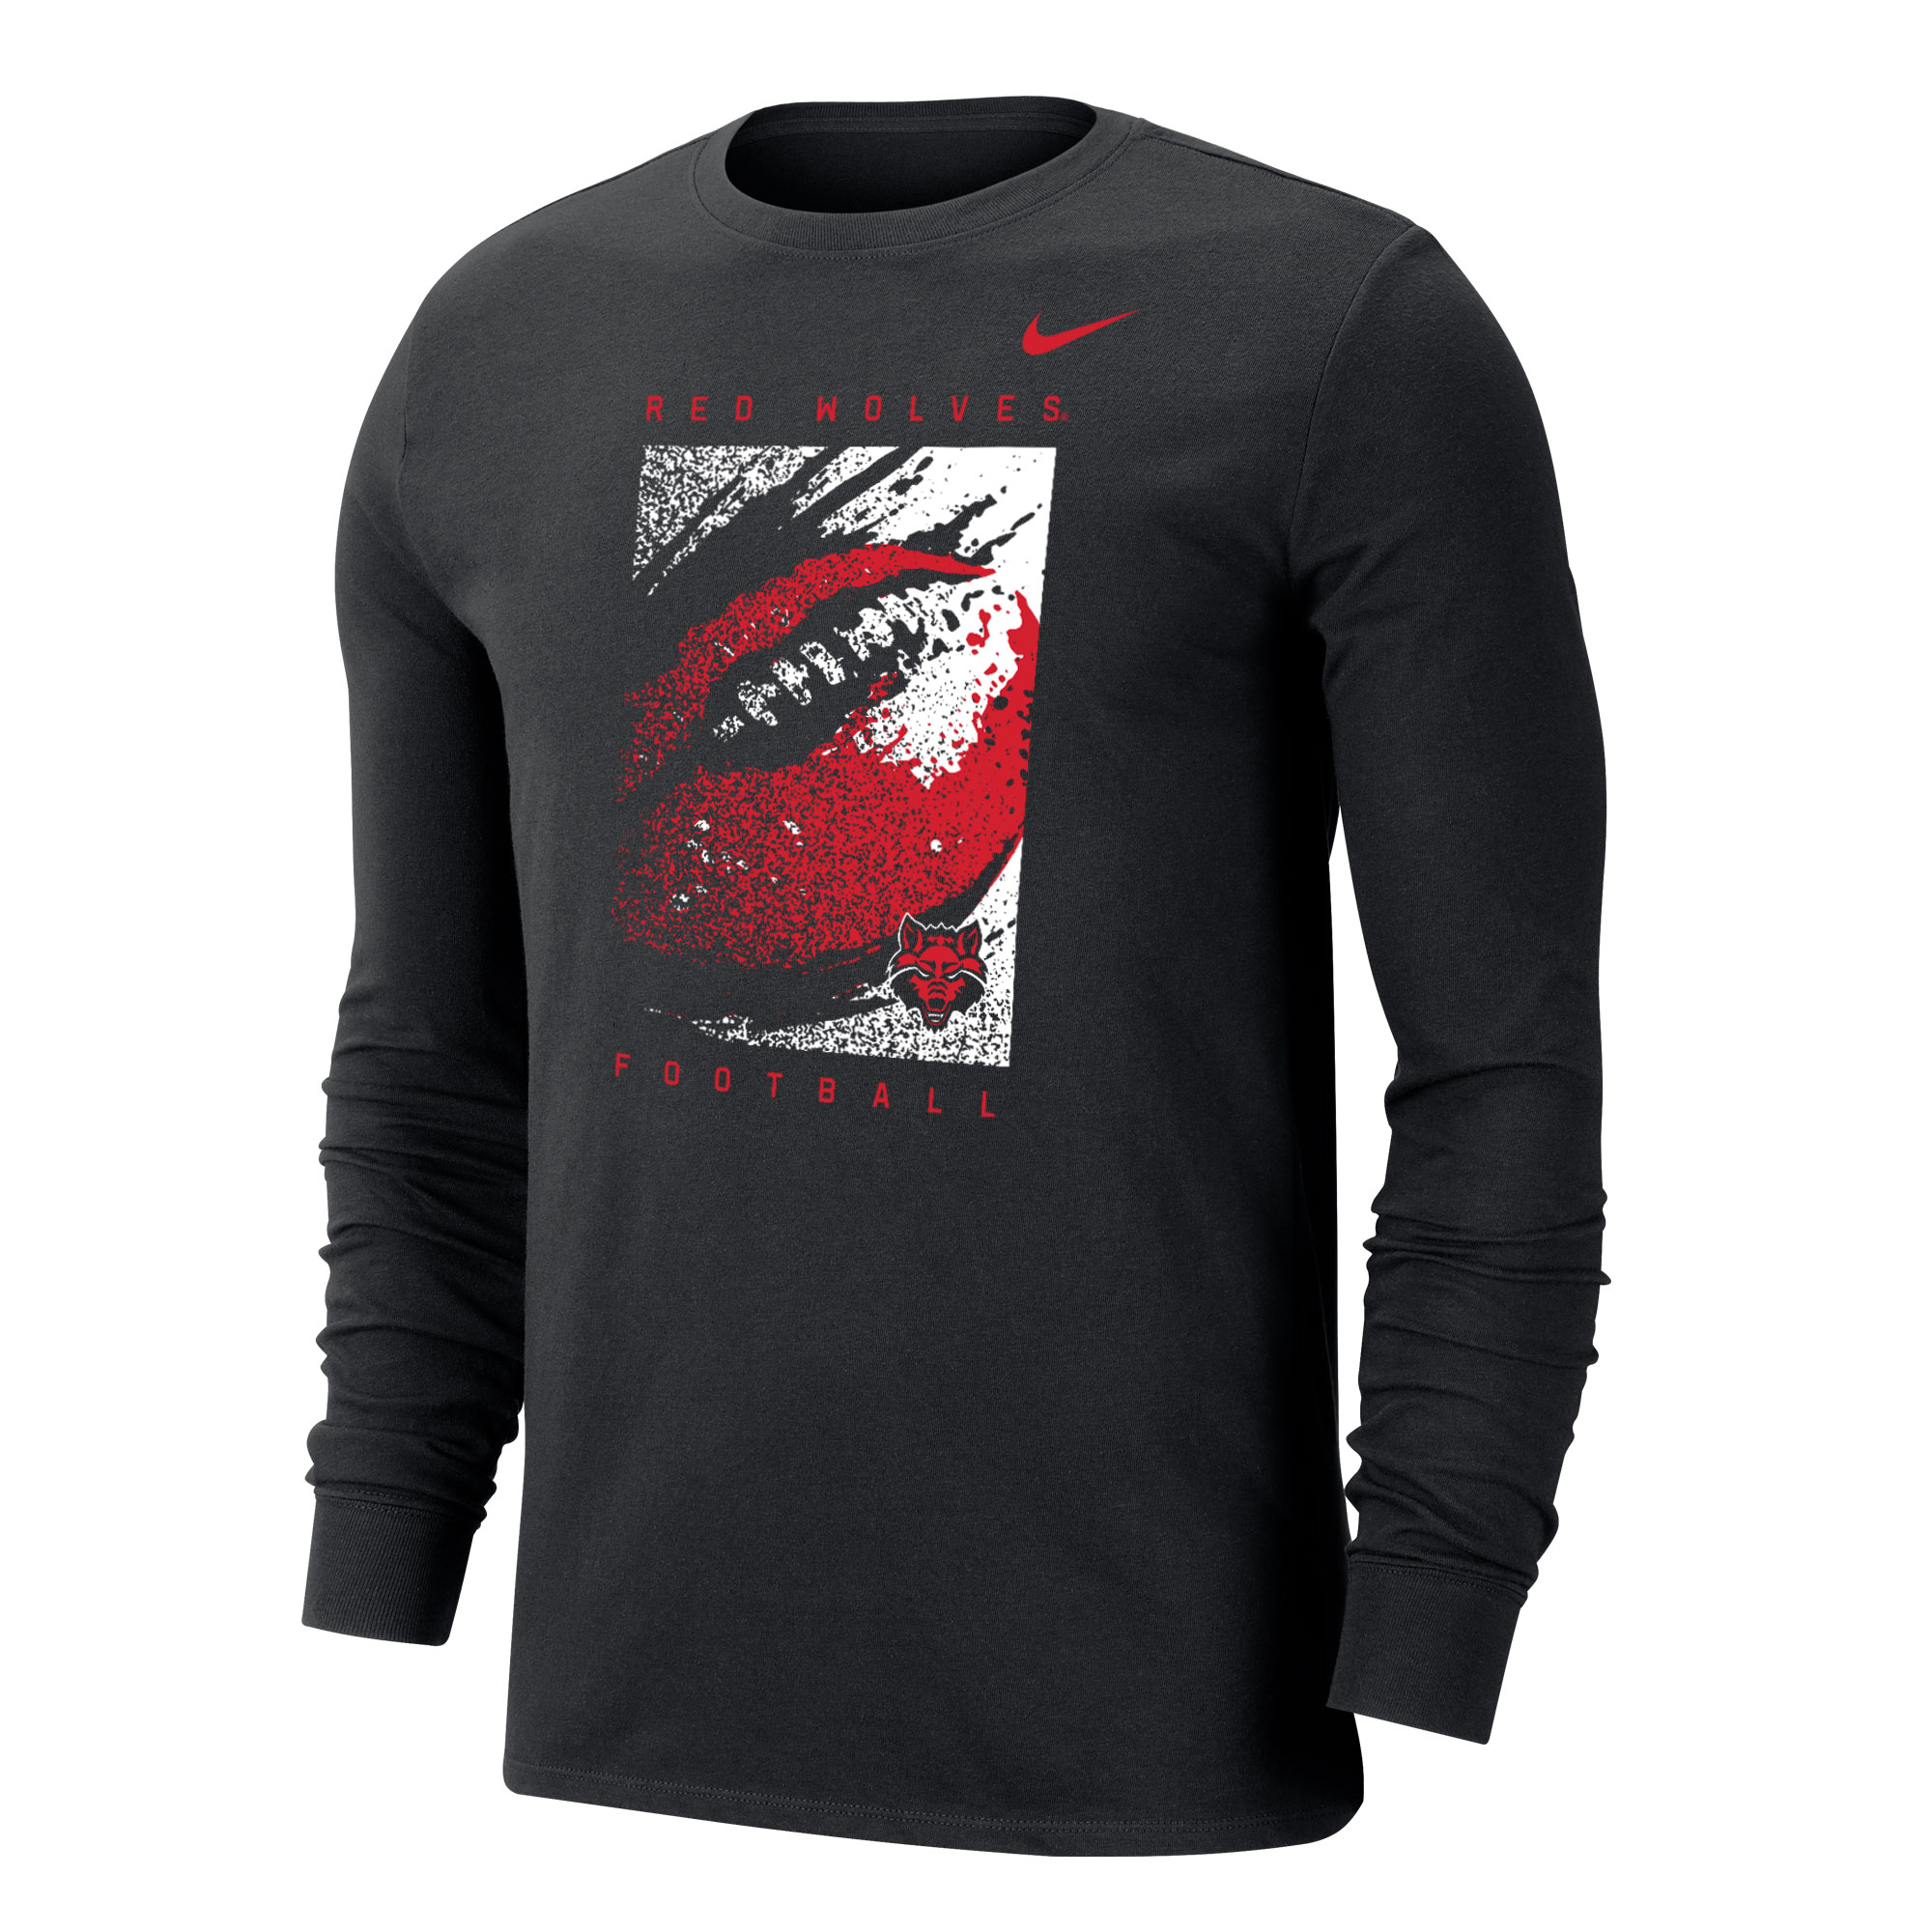 Arkansas State Football Dri-FIT Cotton LS Tee